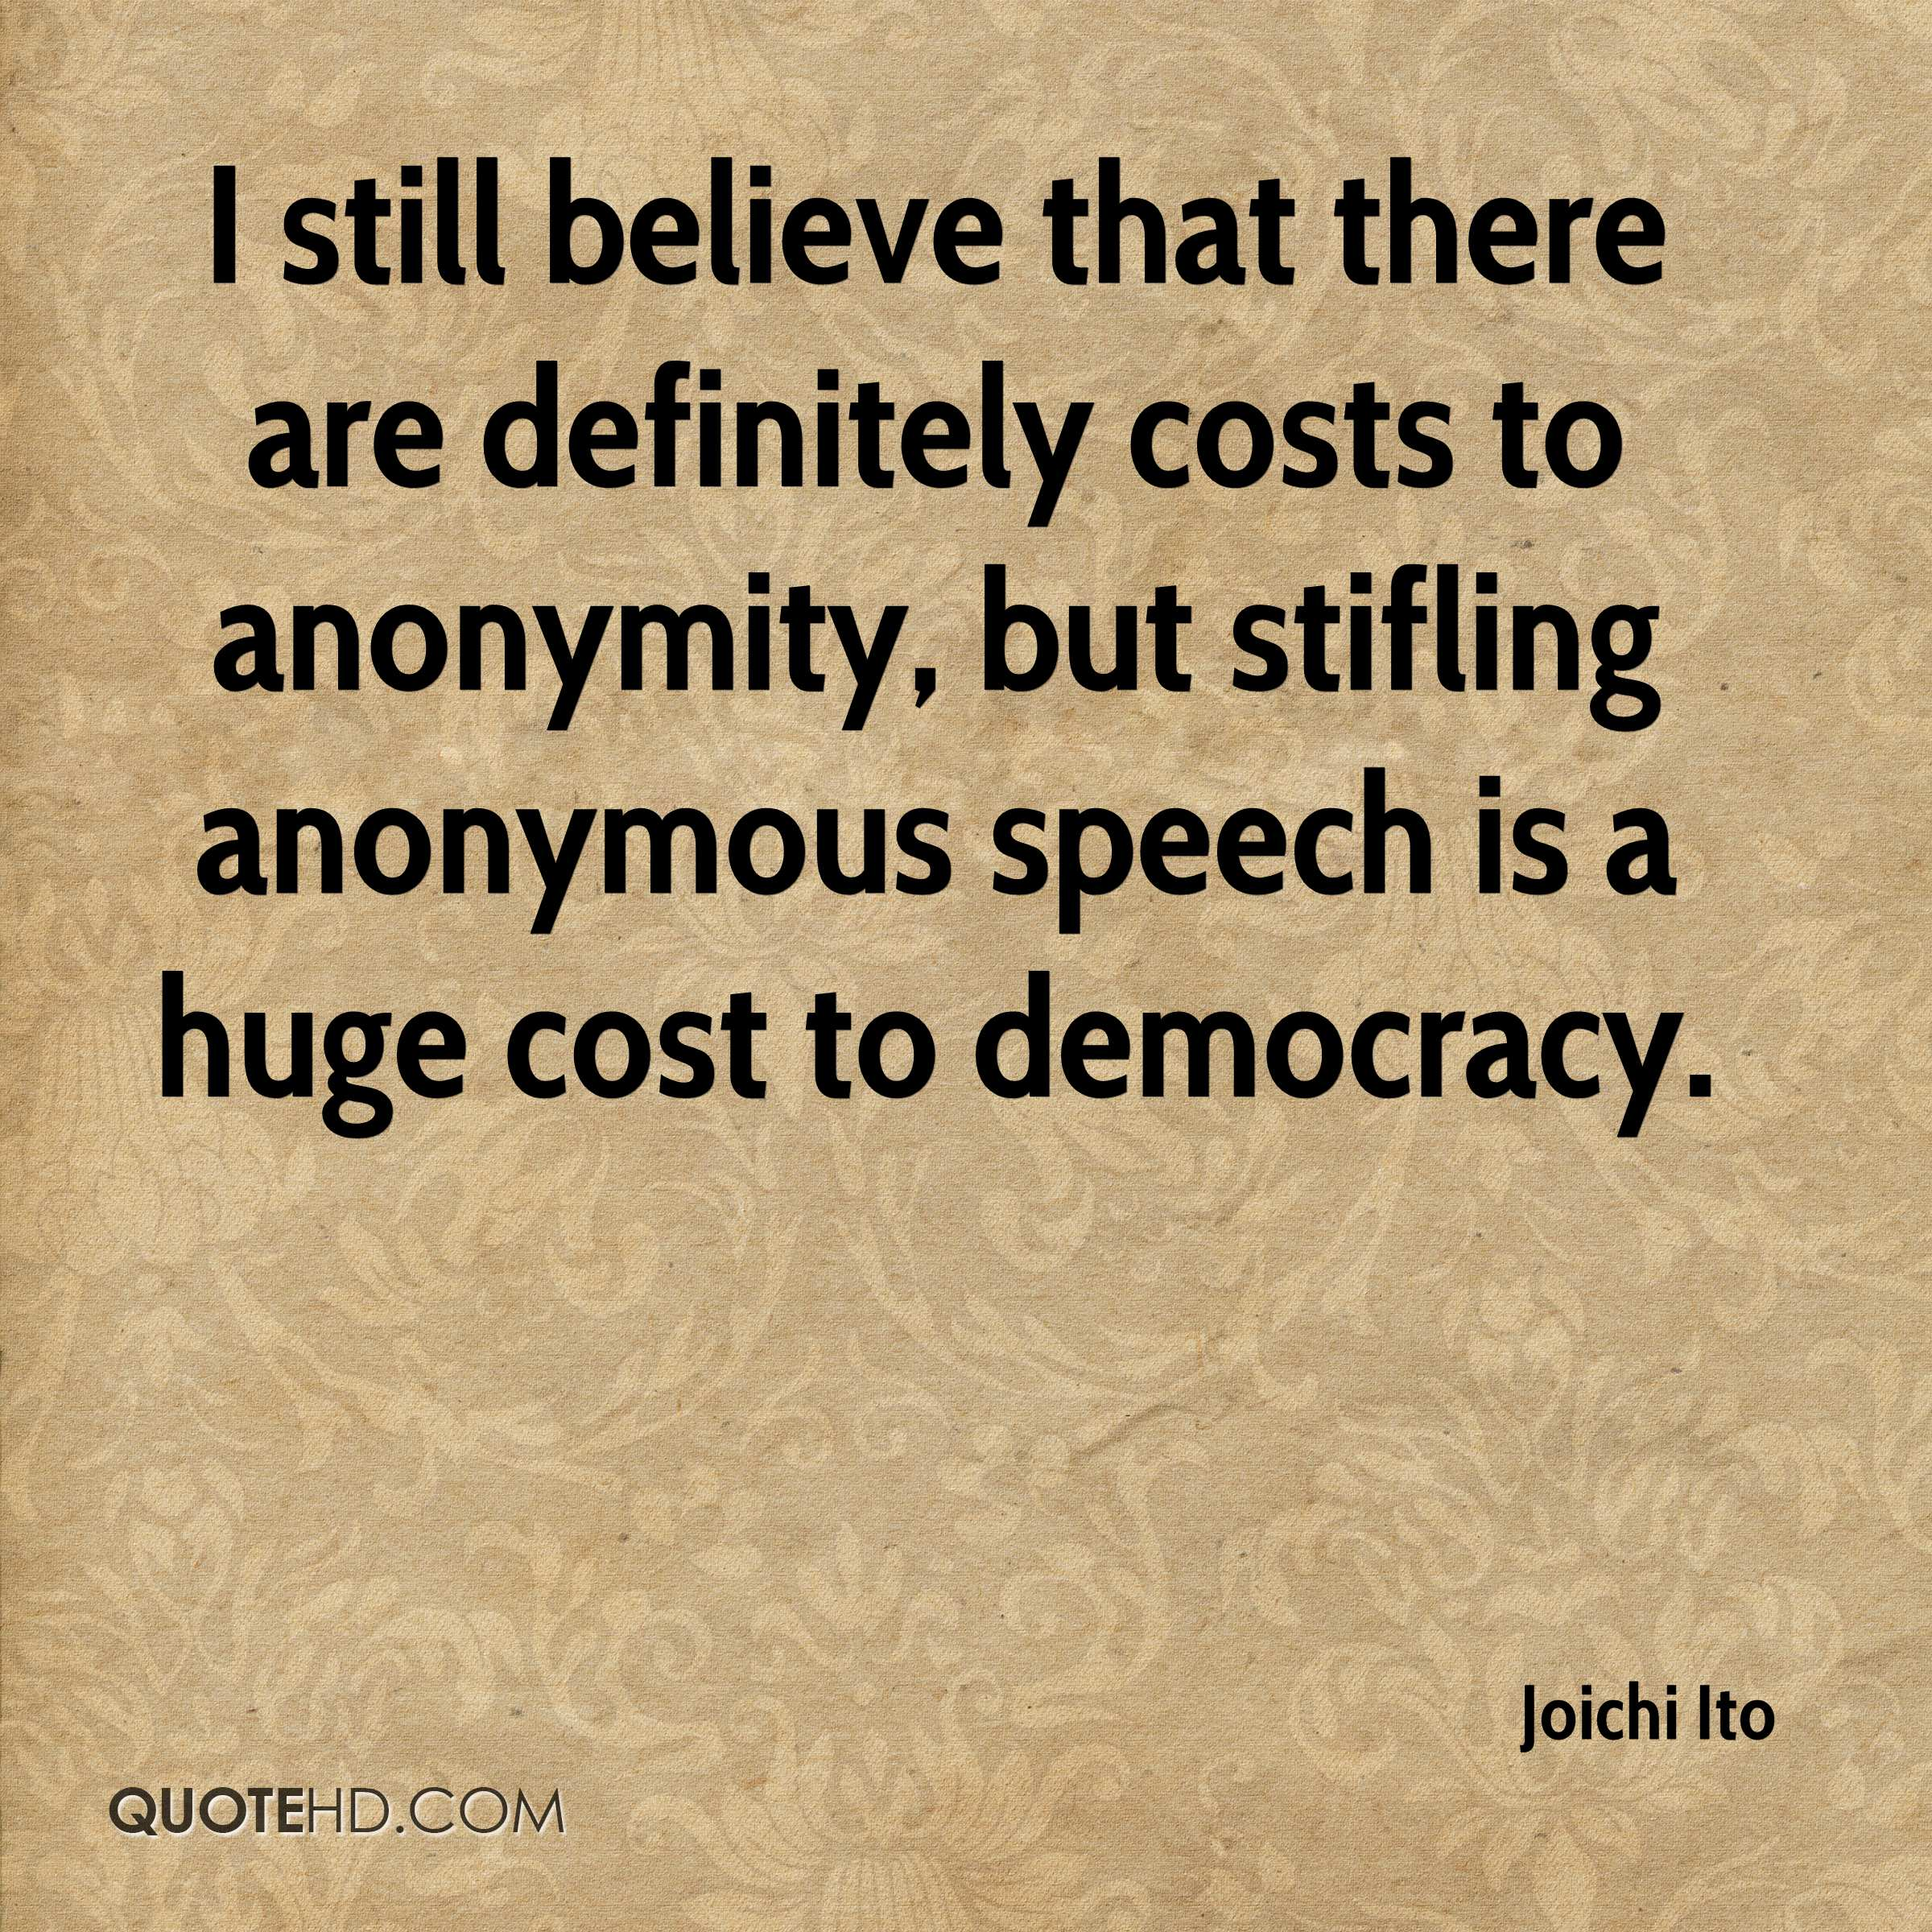 I still believe that there are definitely costs to anonymity, but stifling anonymous speech is a huge cost to democracy.